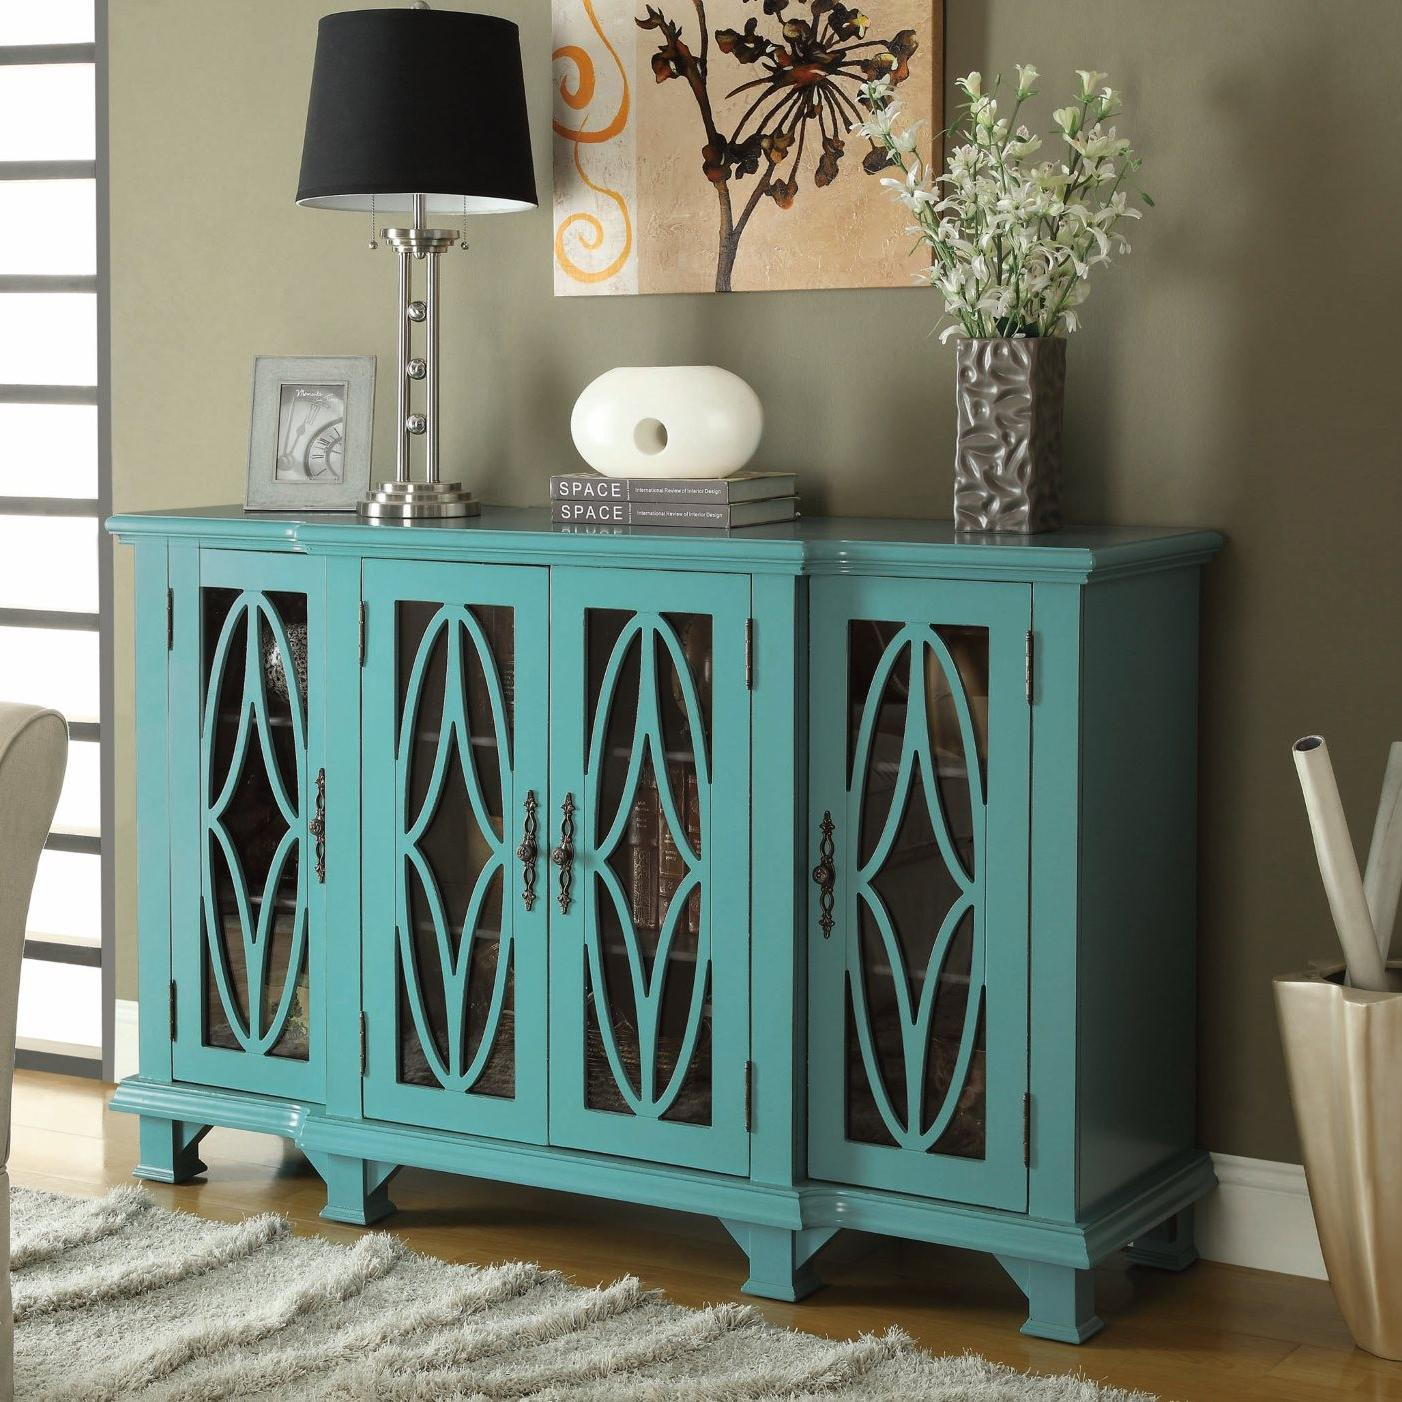 Accent Teal Cabinet with 4 Glass Doors Furniture Stores & accent cabinet storage cabinets on sale cabinet VA stores